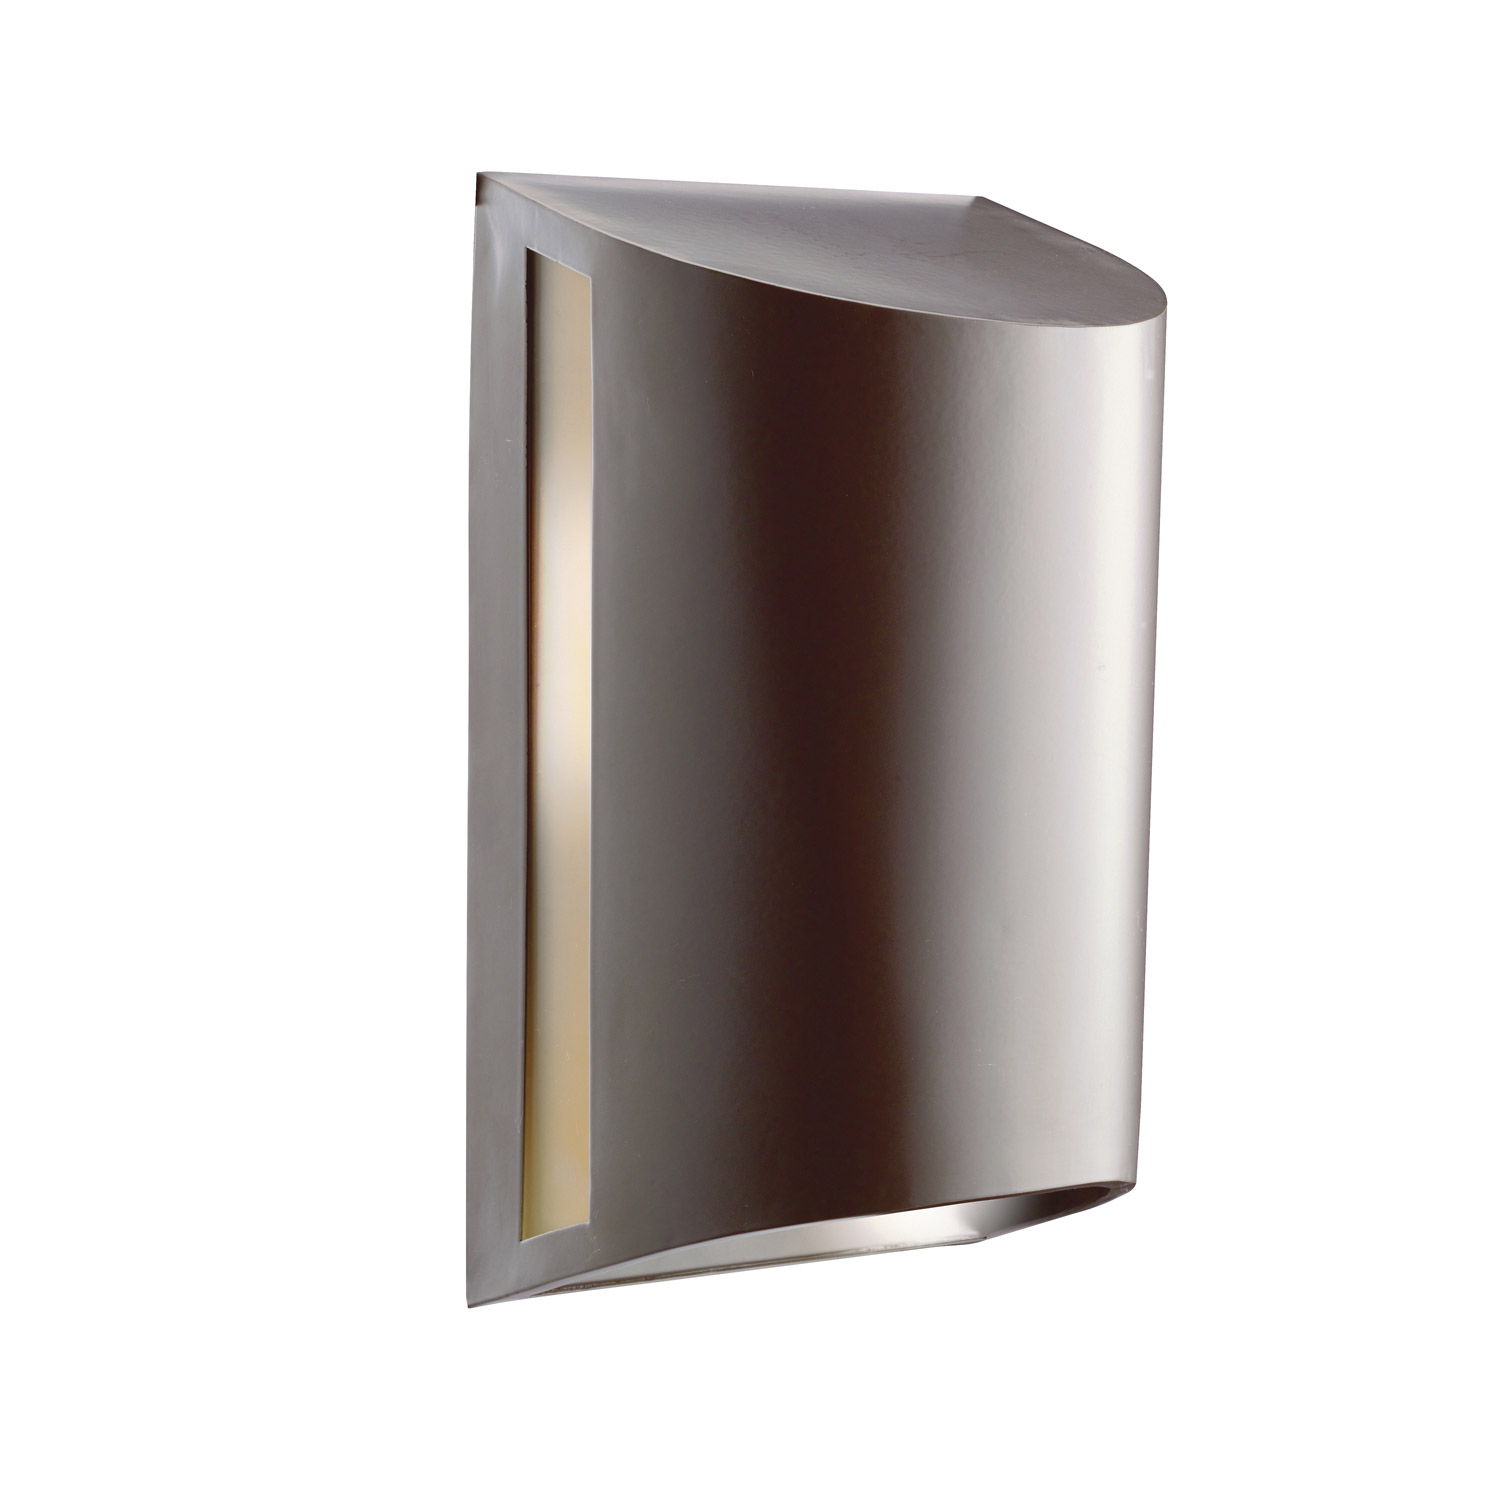 Kichler Outdoor Wall Sconces : Kichler 10922AZ Outdoor Wall Sconce